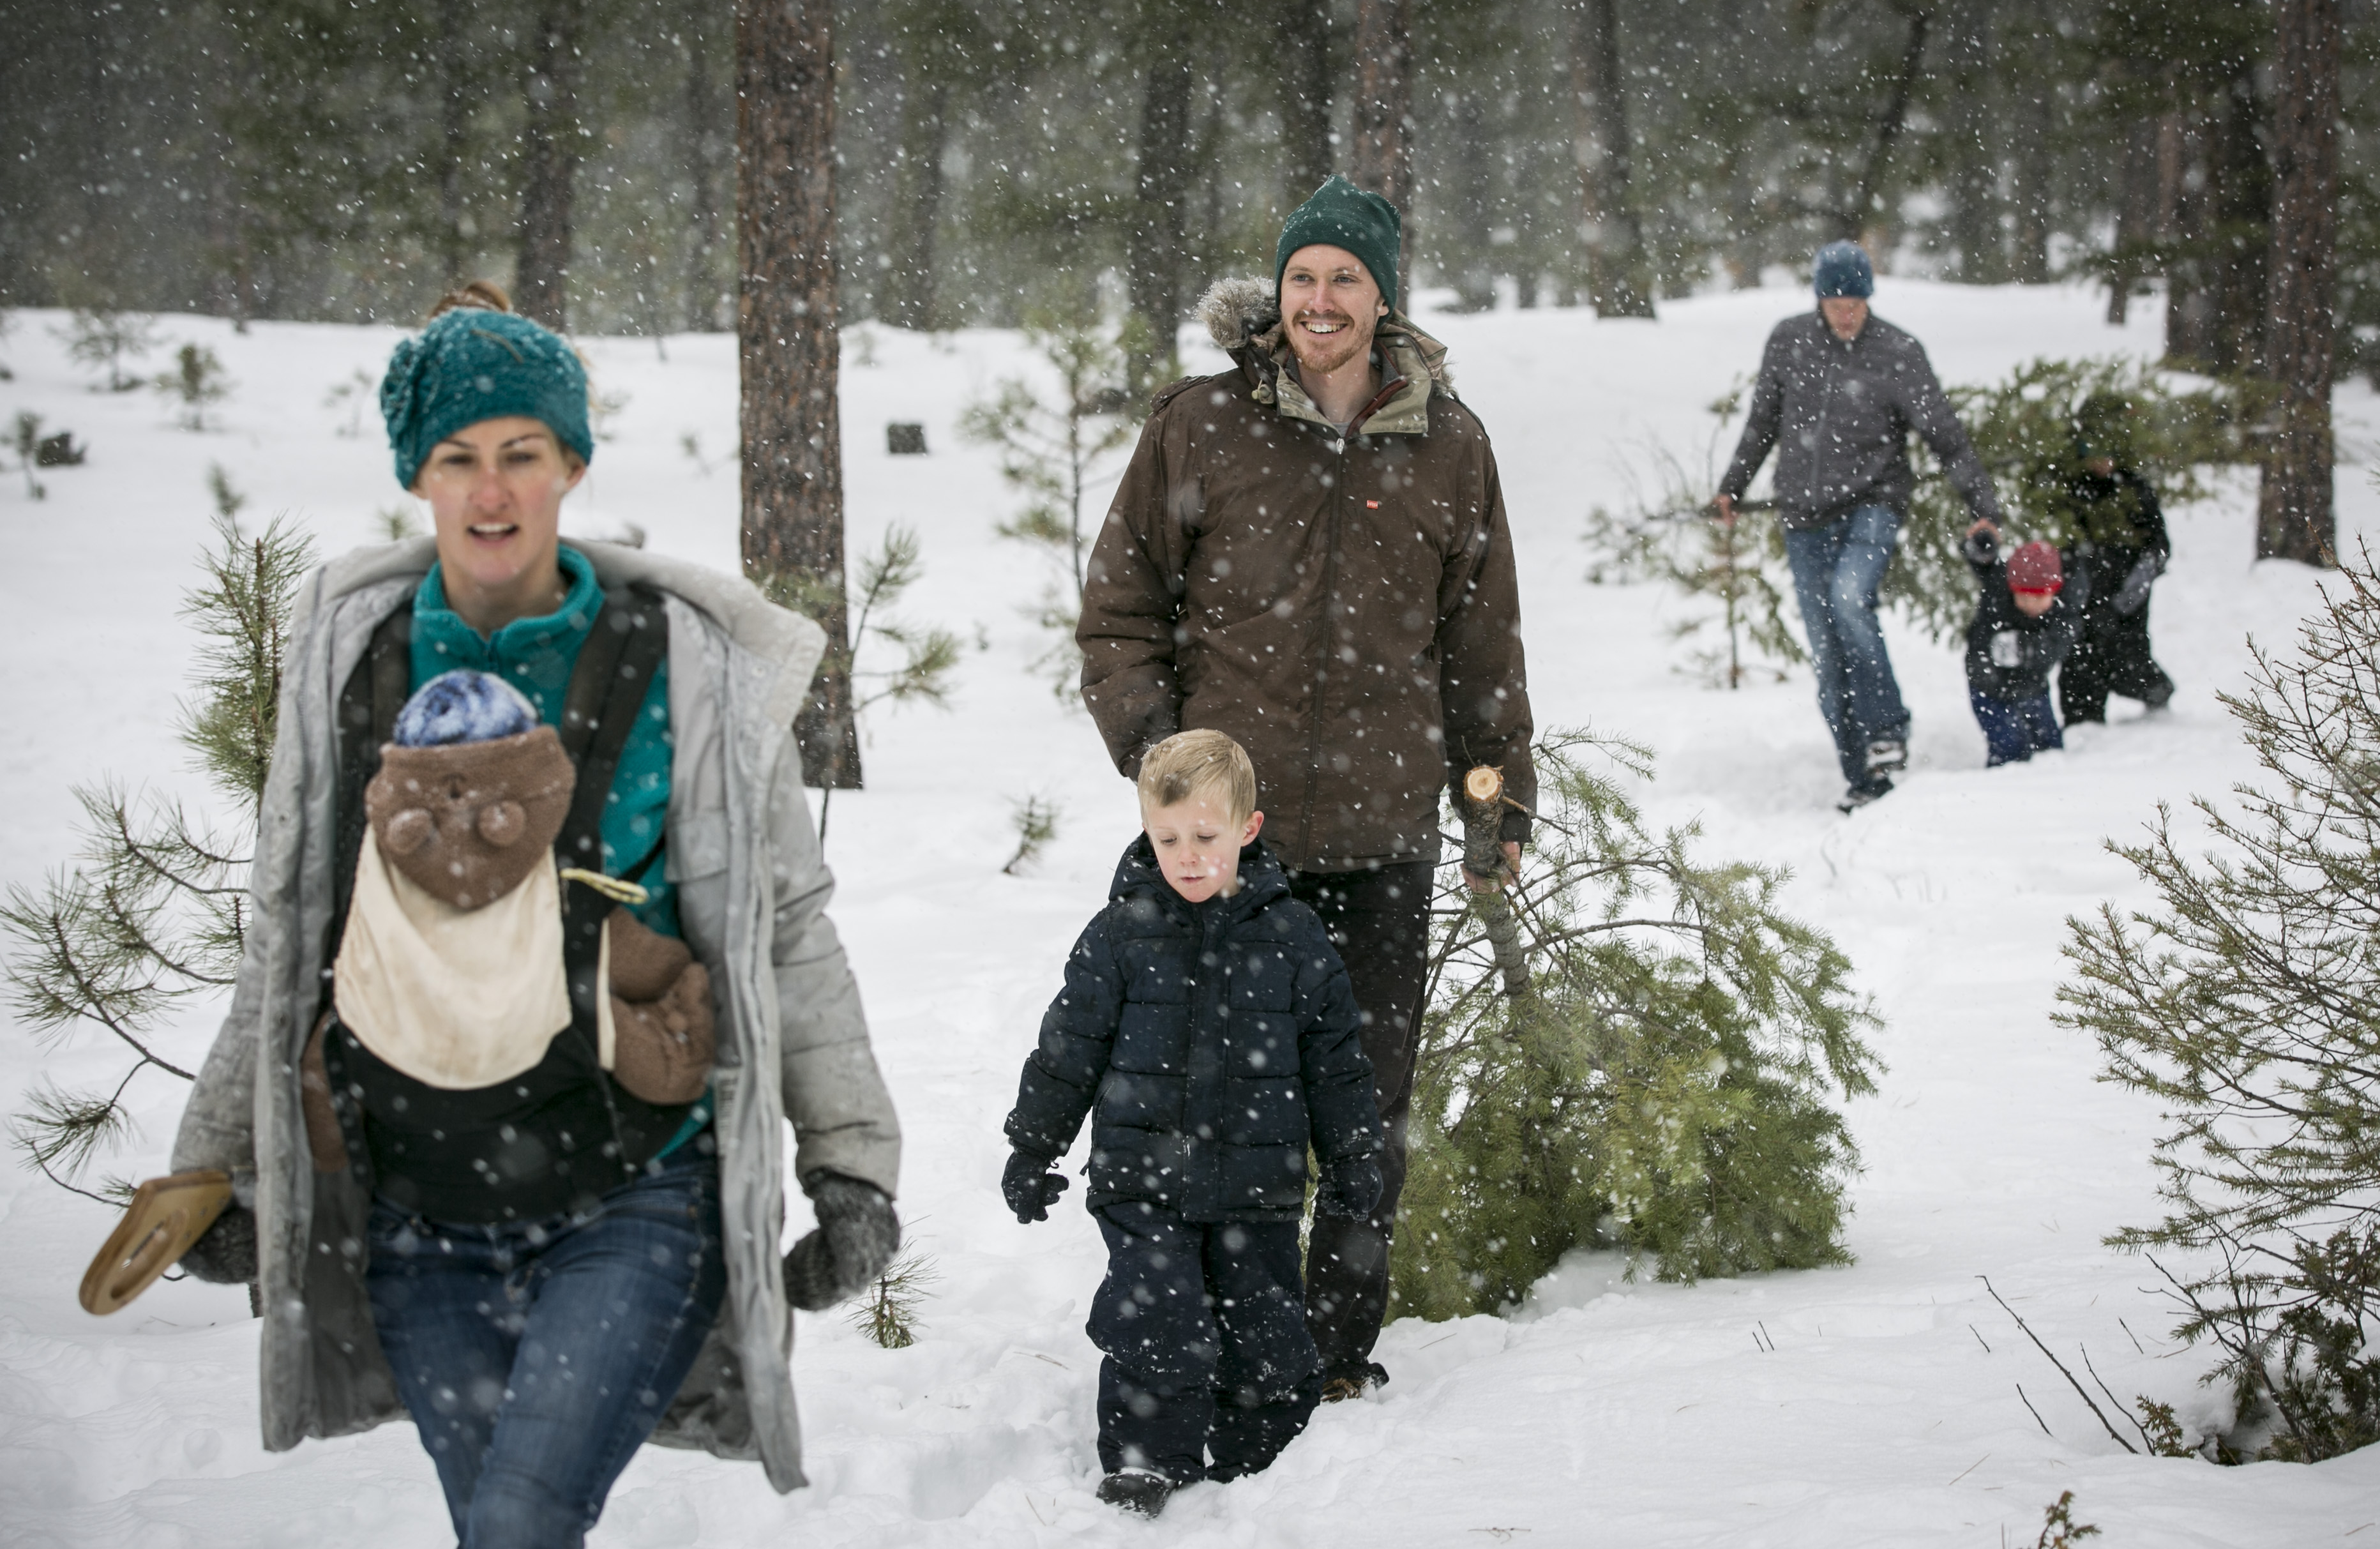 <p>John McGuin, center, drags his Christmas tree out of the Pike National Forest near Buffalo Creek, Colo. on Saturday, Dec. 5, 2015. Atleft is his sister-in-law Amy, and atright is brother Patrick. They are surrounded by Amy and Patrick's sons.</p>